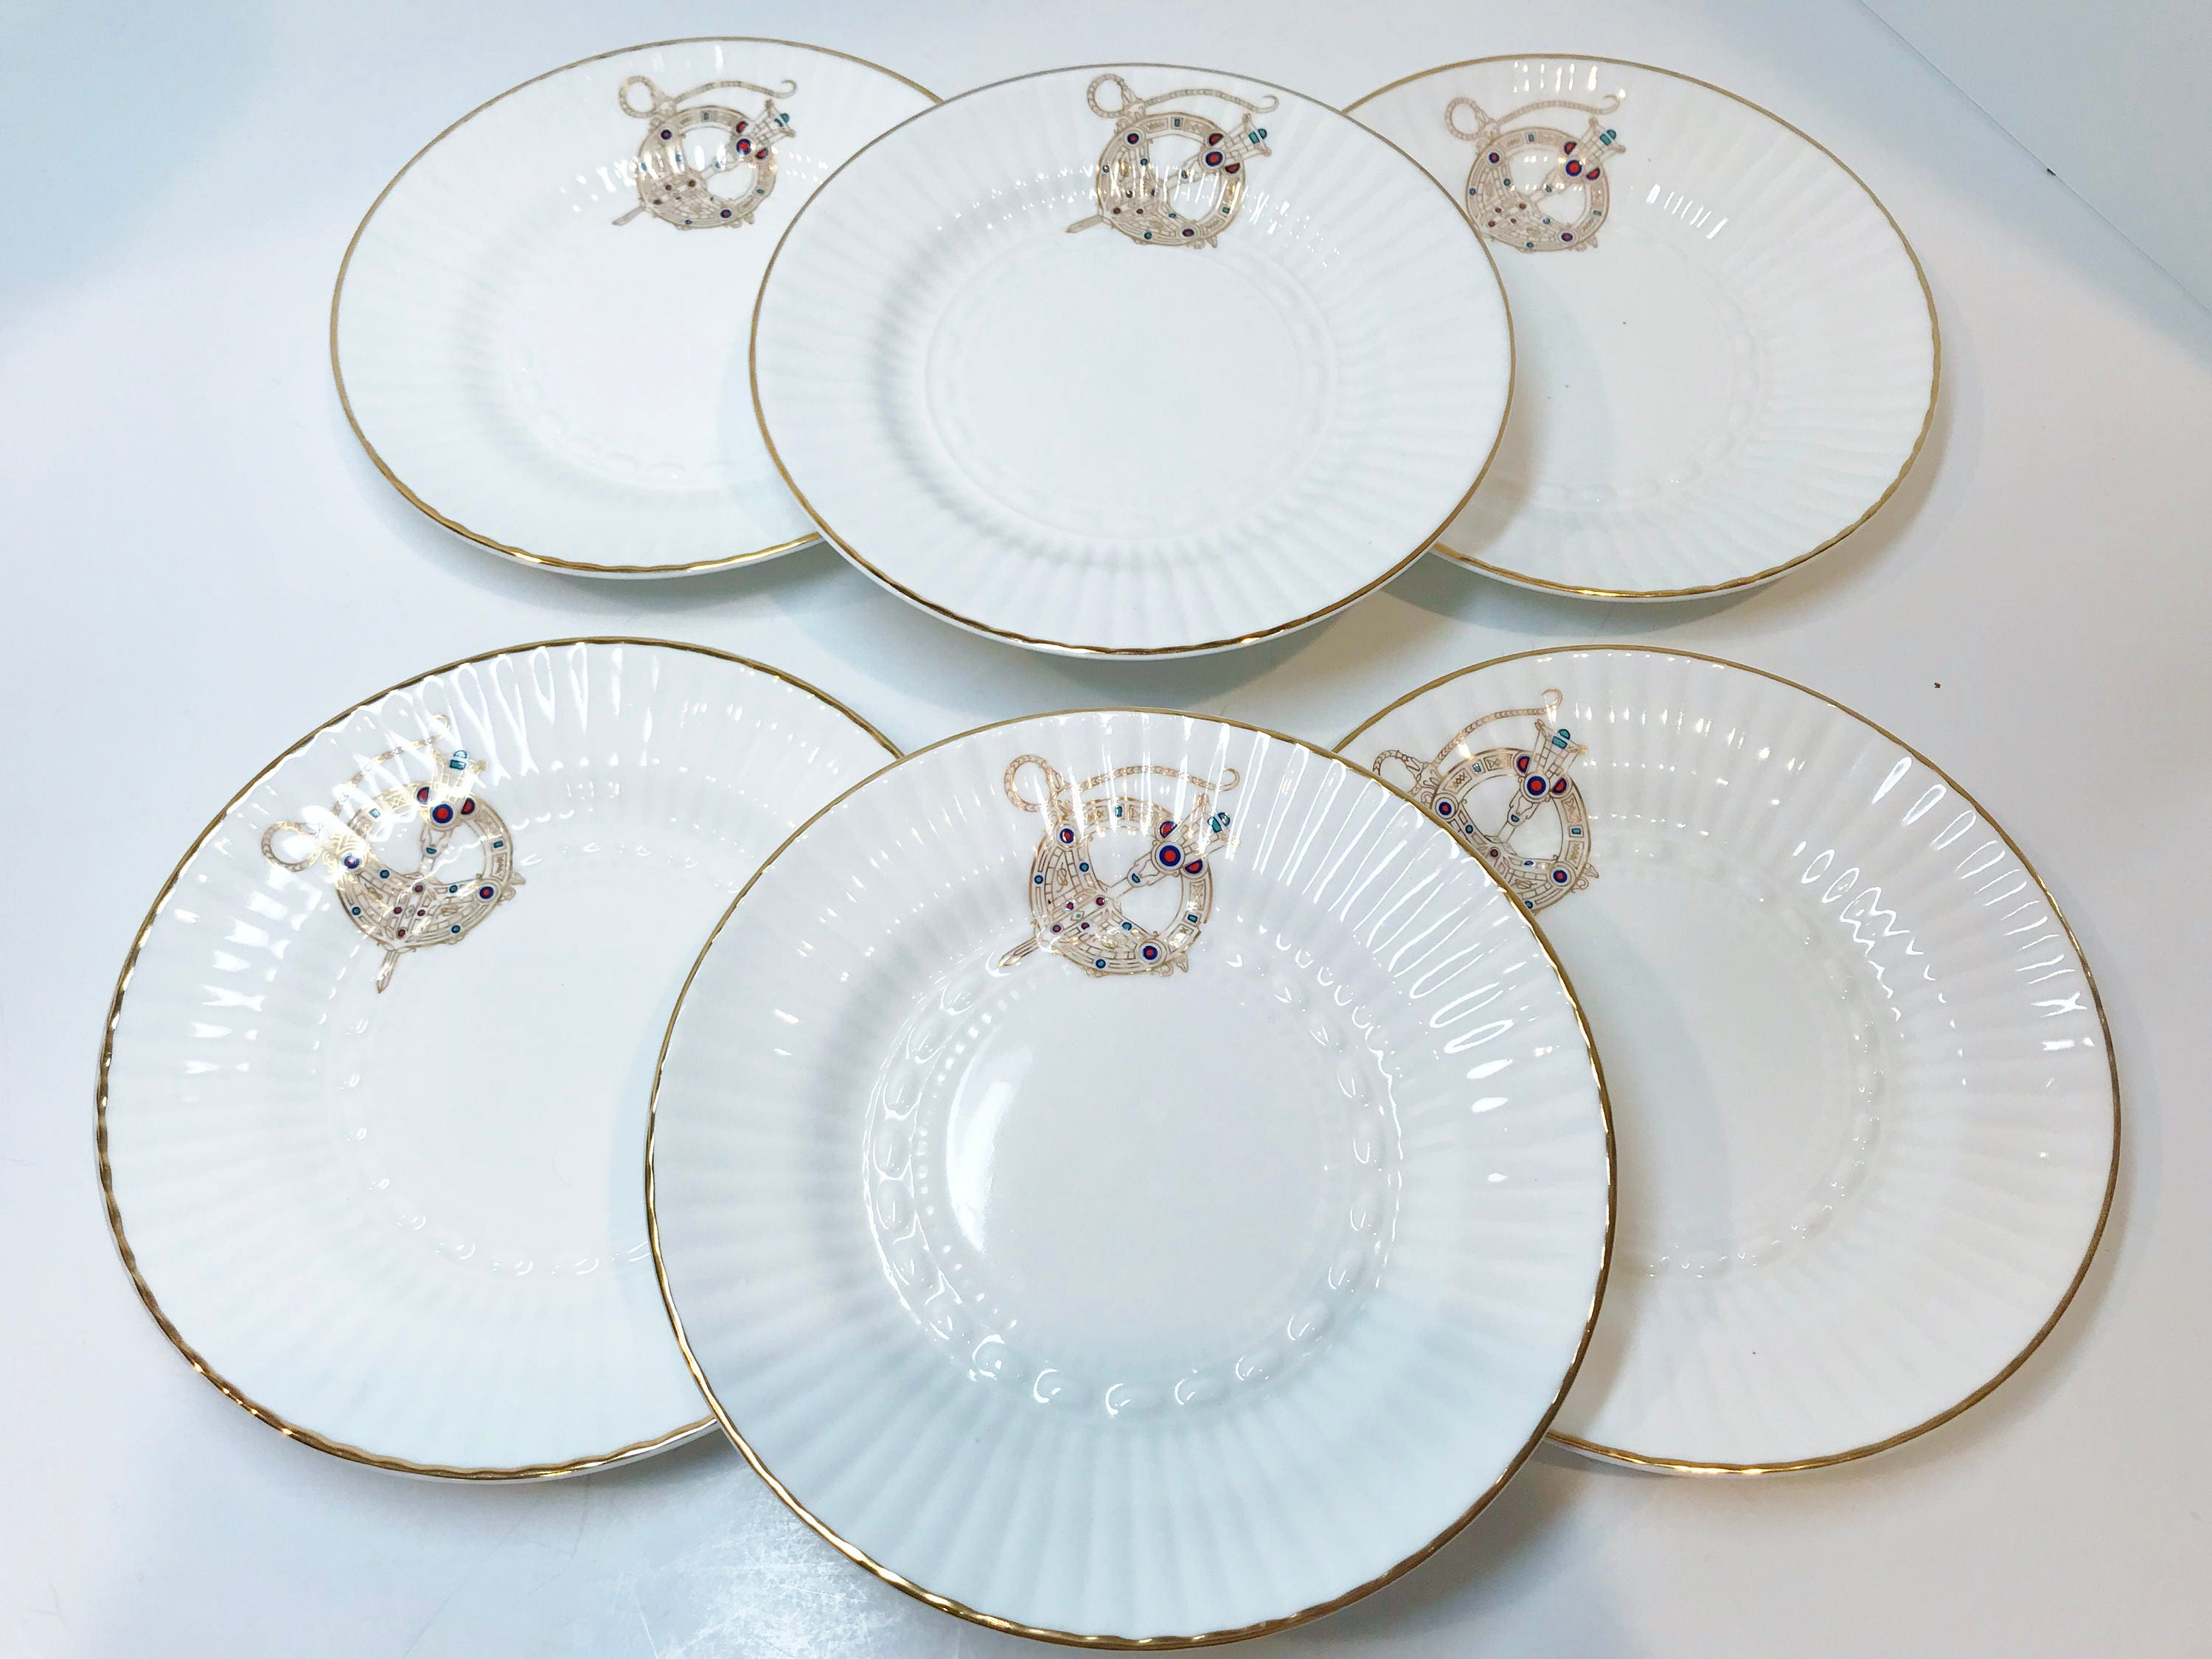 Royal Tara Set of 6 Plates Tara Brooch Pattern Irish Plates Ireland Plates Bone China Plates Wall Decor Tea Set Made in Ireland & Royal Tara Set of 6 Plates Tara Brooch Pattern Irish Plates ...